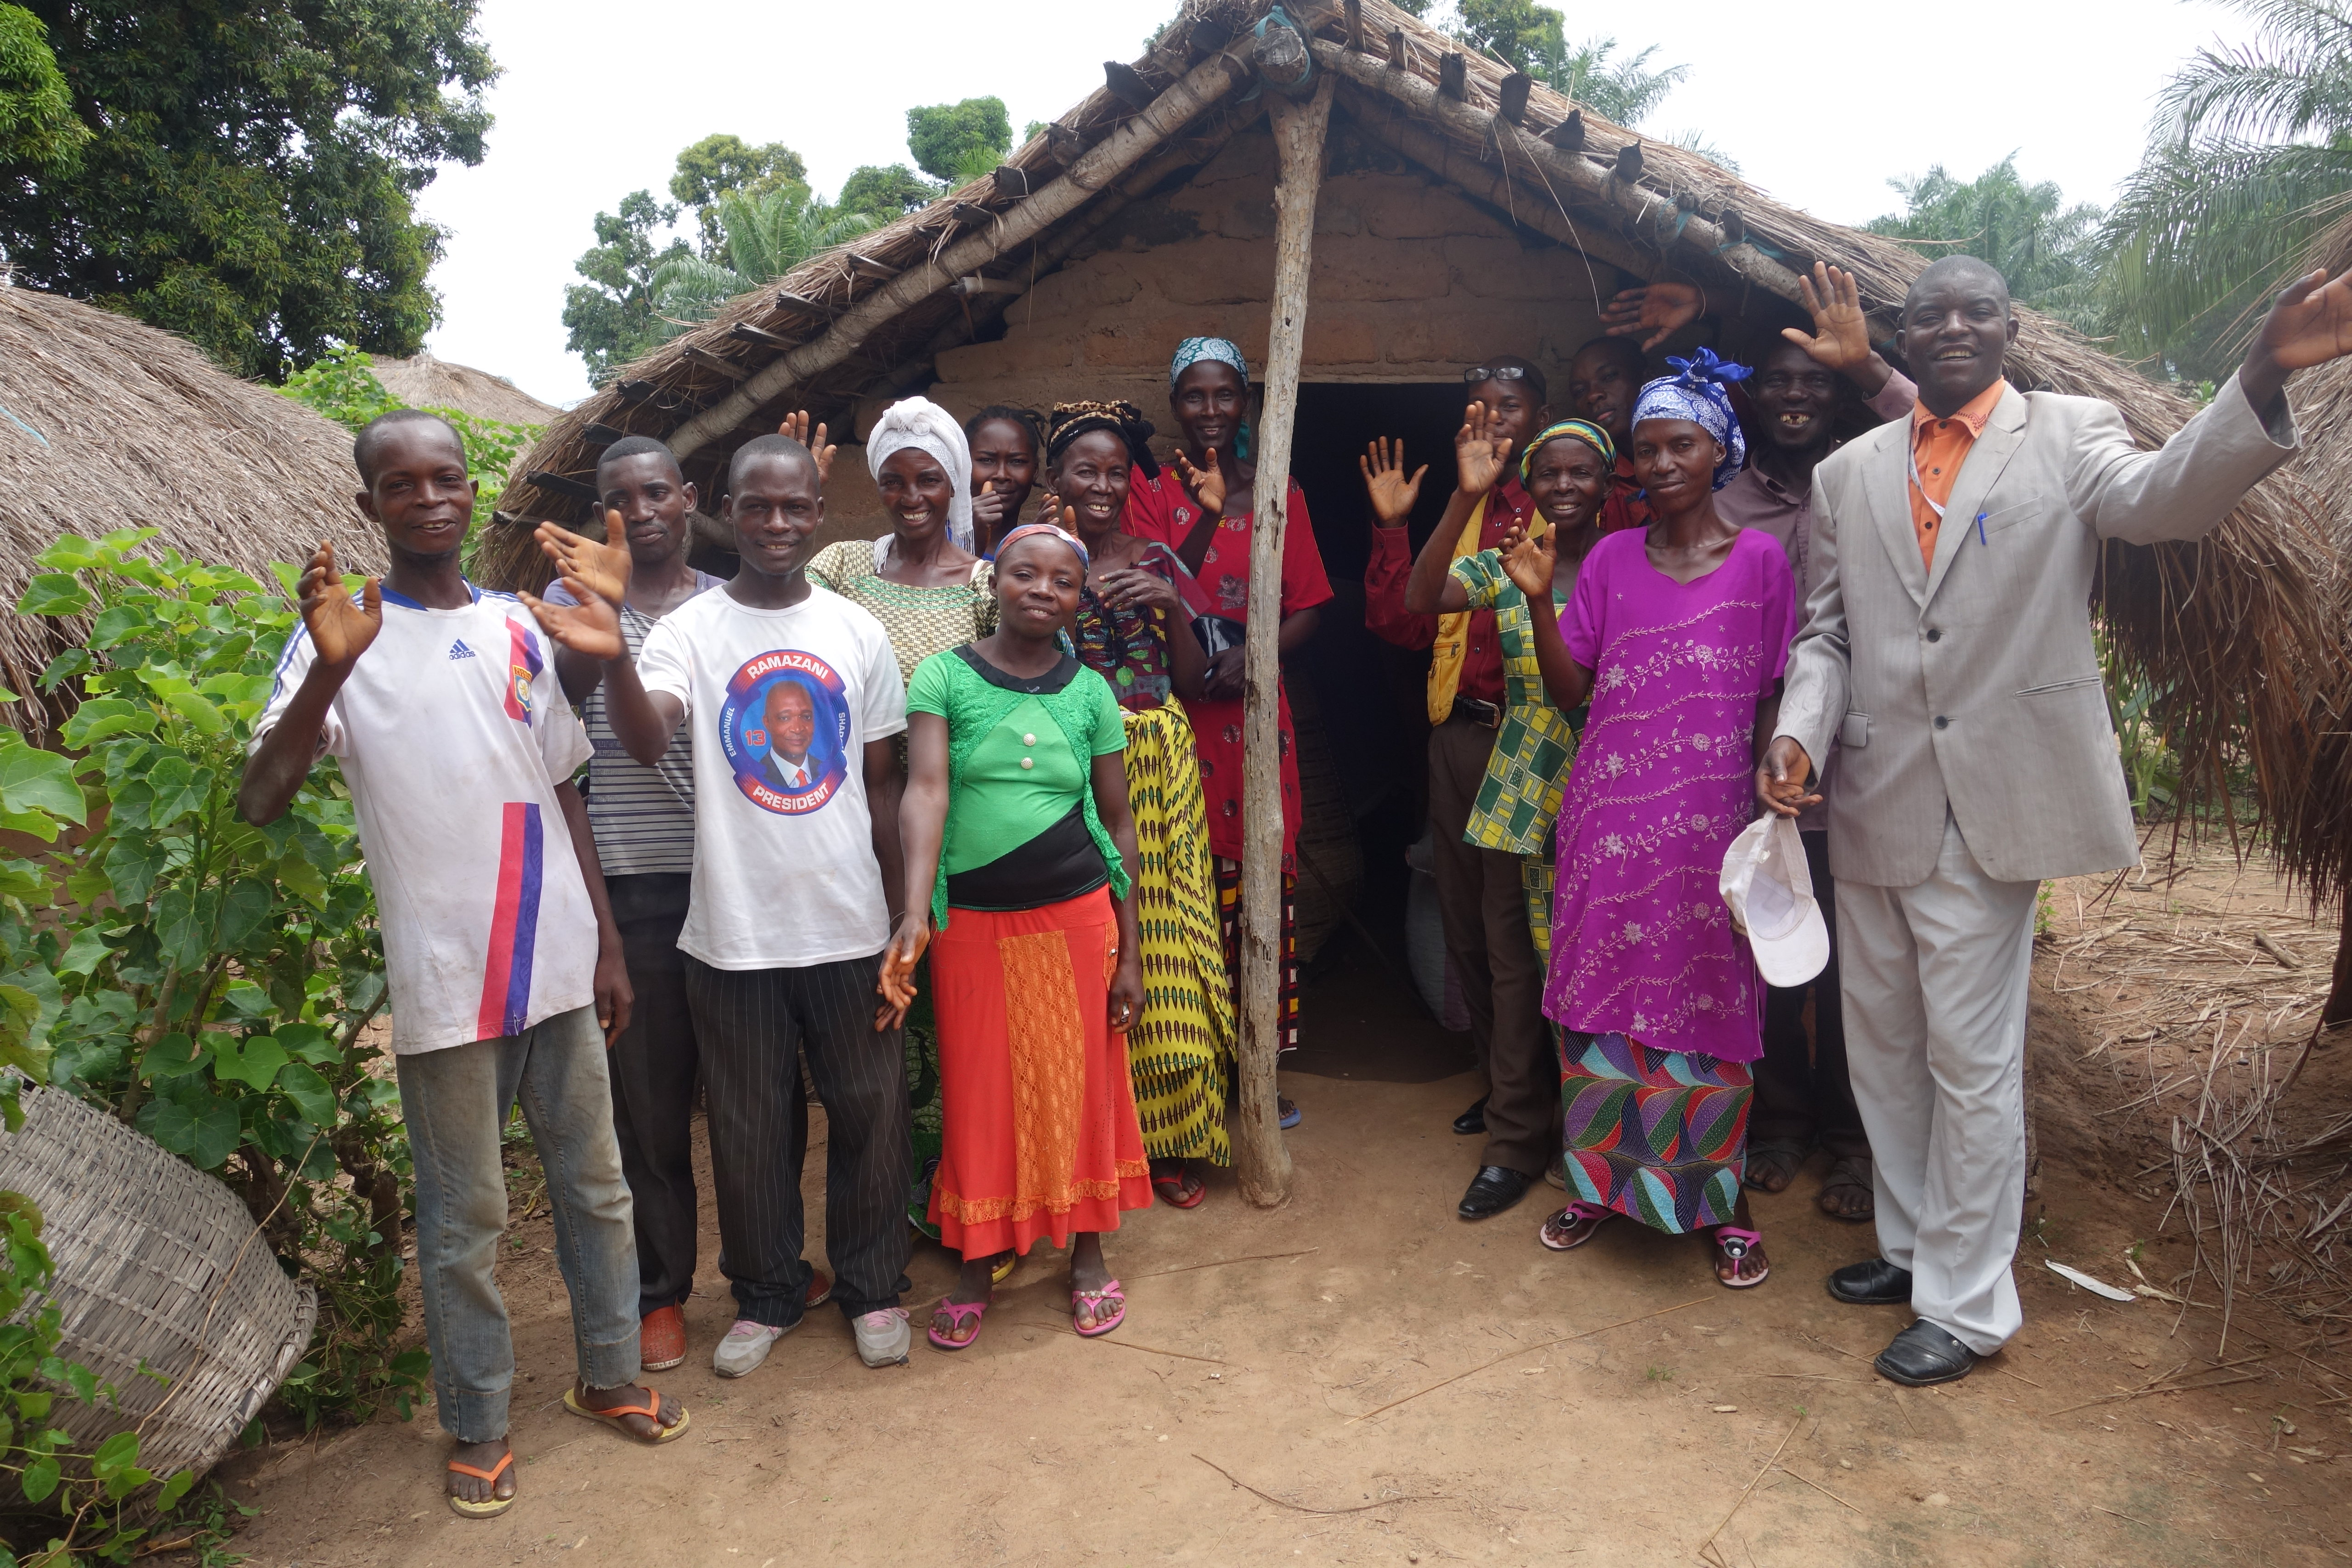 Improving the prospects for local peace through the Dimitra Clubs in the Democratic Republic of the Congo